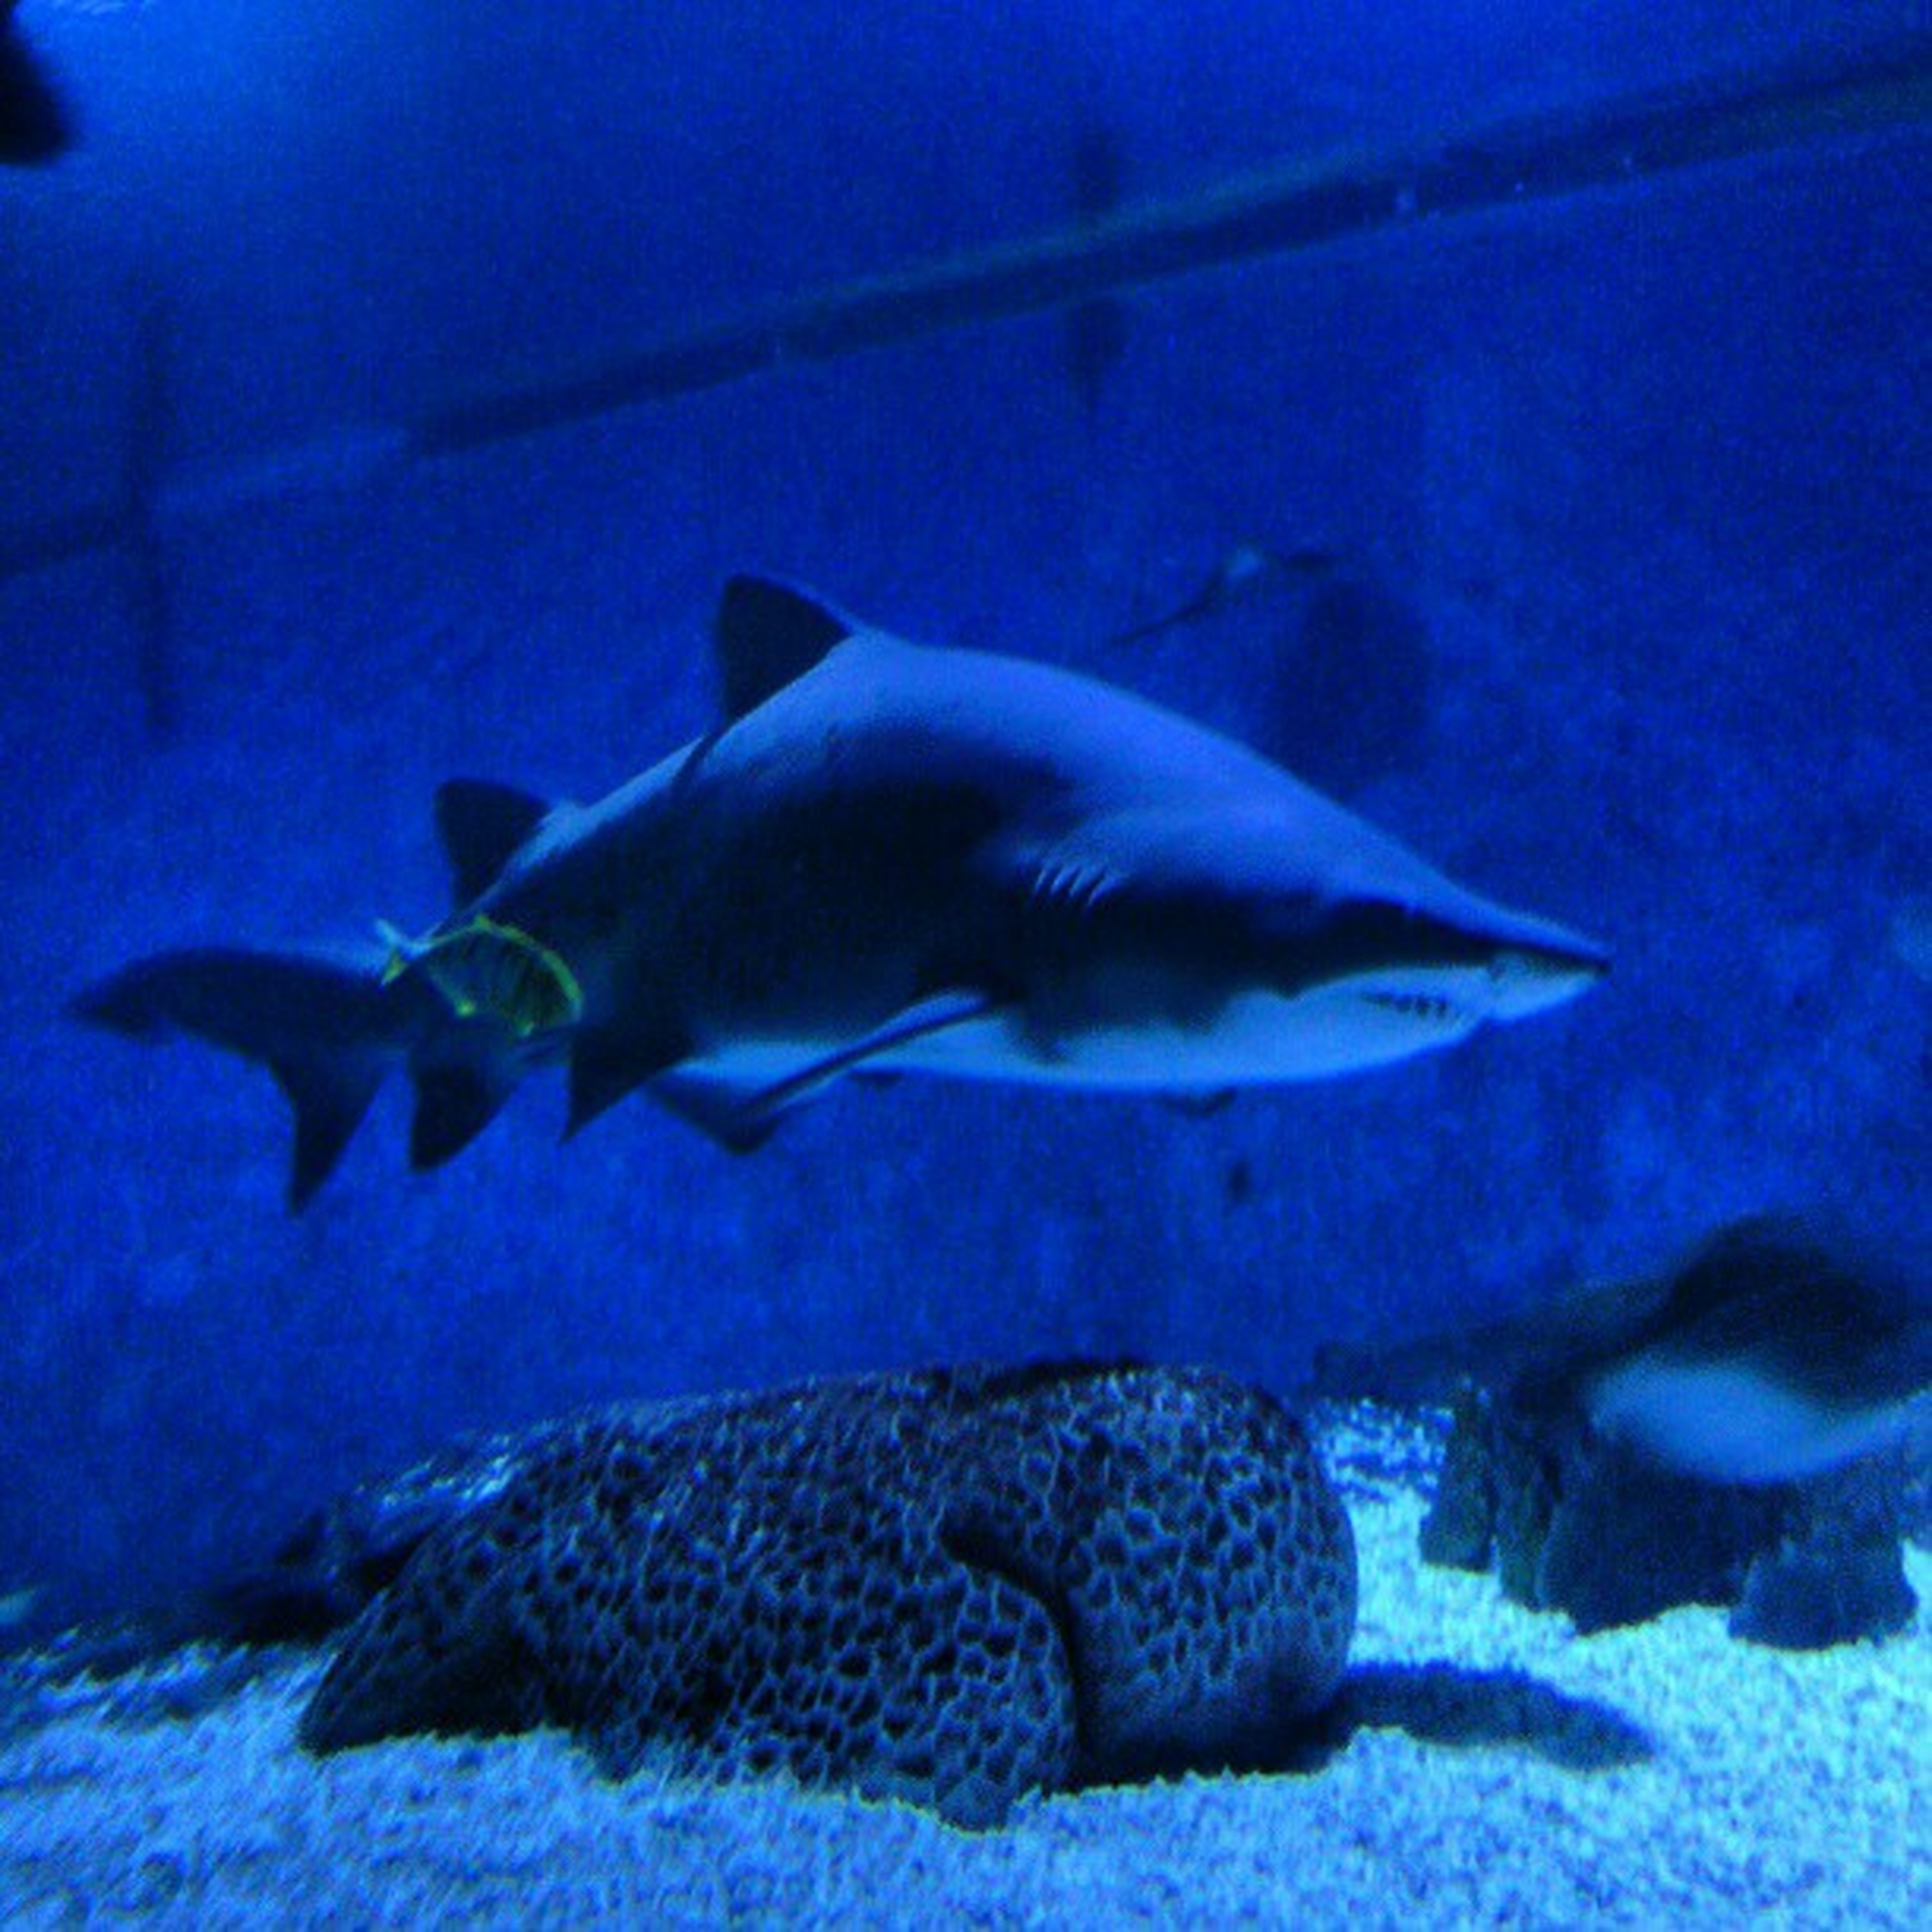 animal themes, underwater, animals in the wild, sea life, wildlife, swimming, fish, one animal, undersea, blue, water, aquarium, animals in captivity, sea, nature, two animals, zoology, indoors, full length